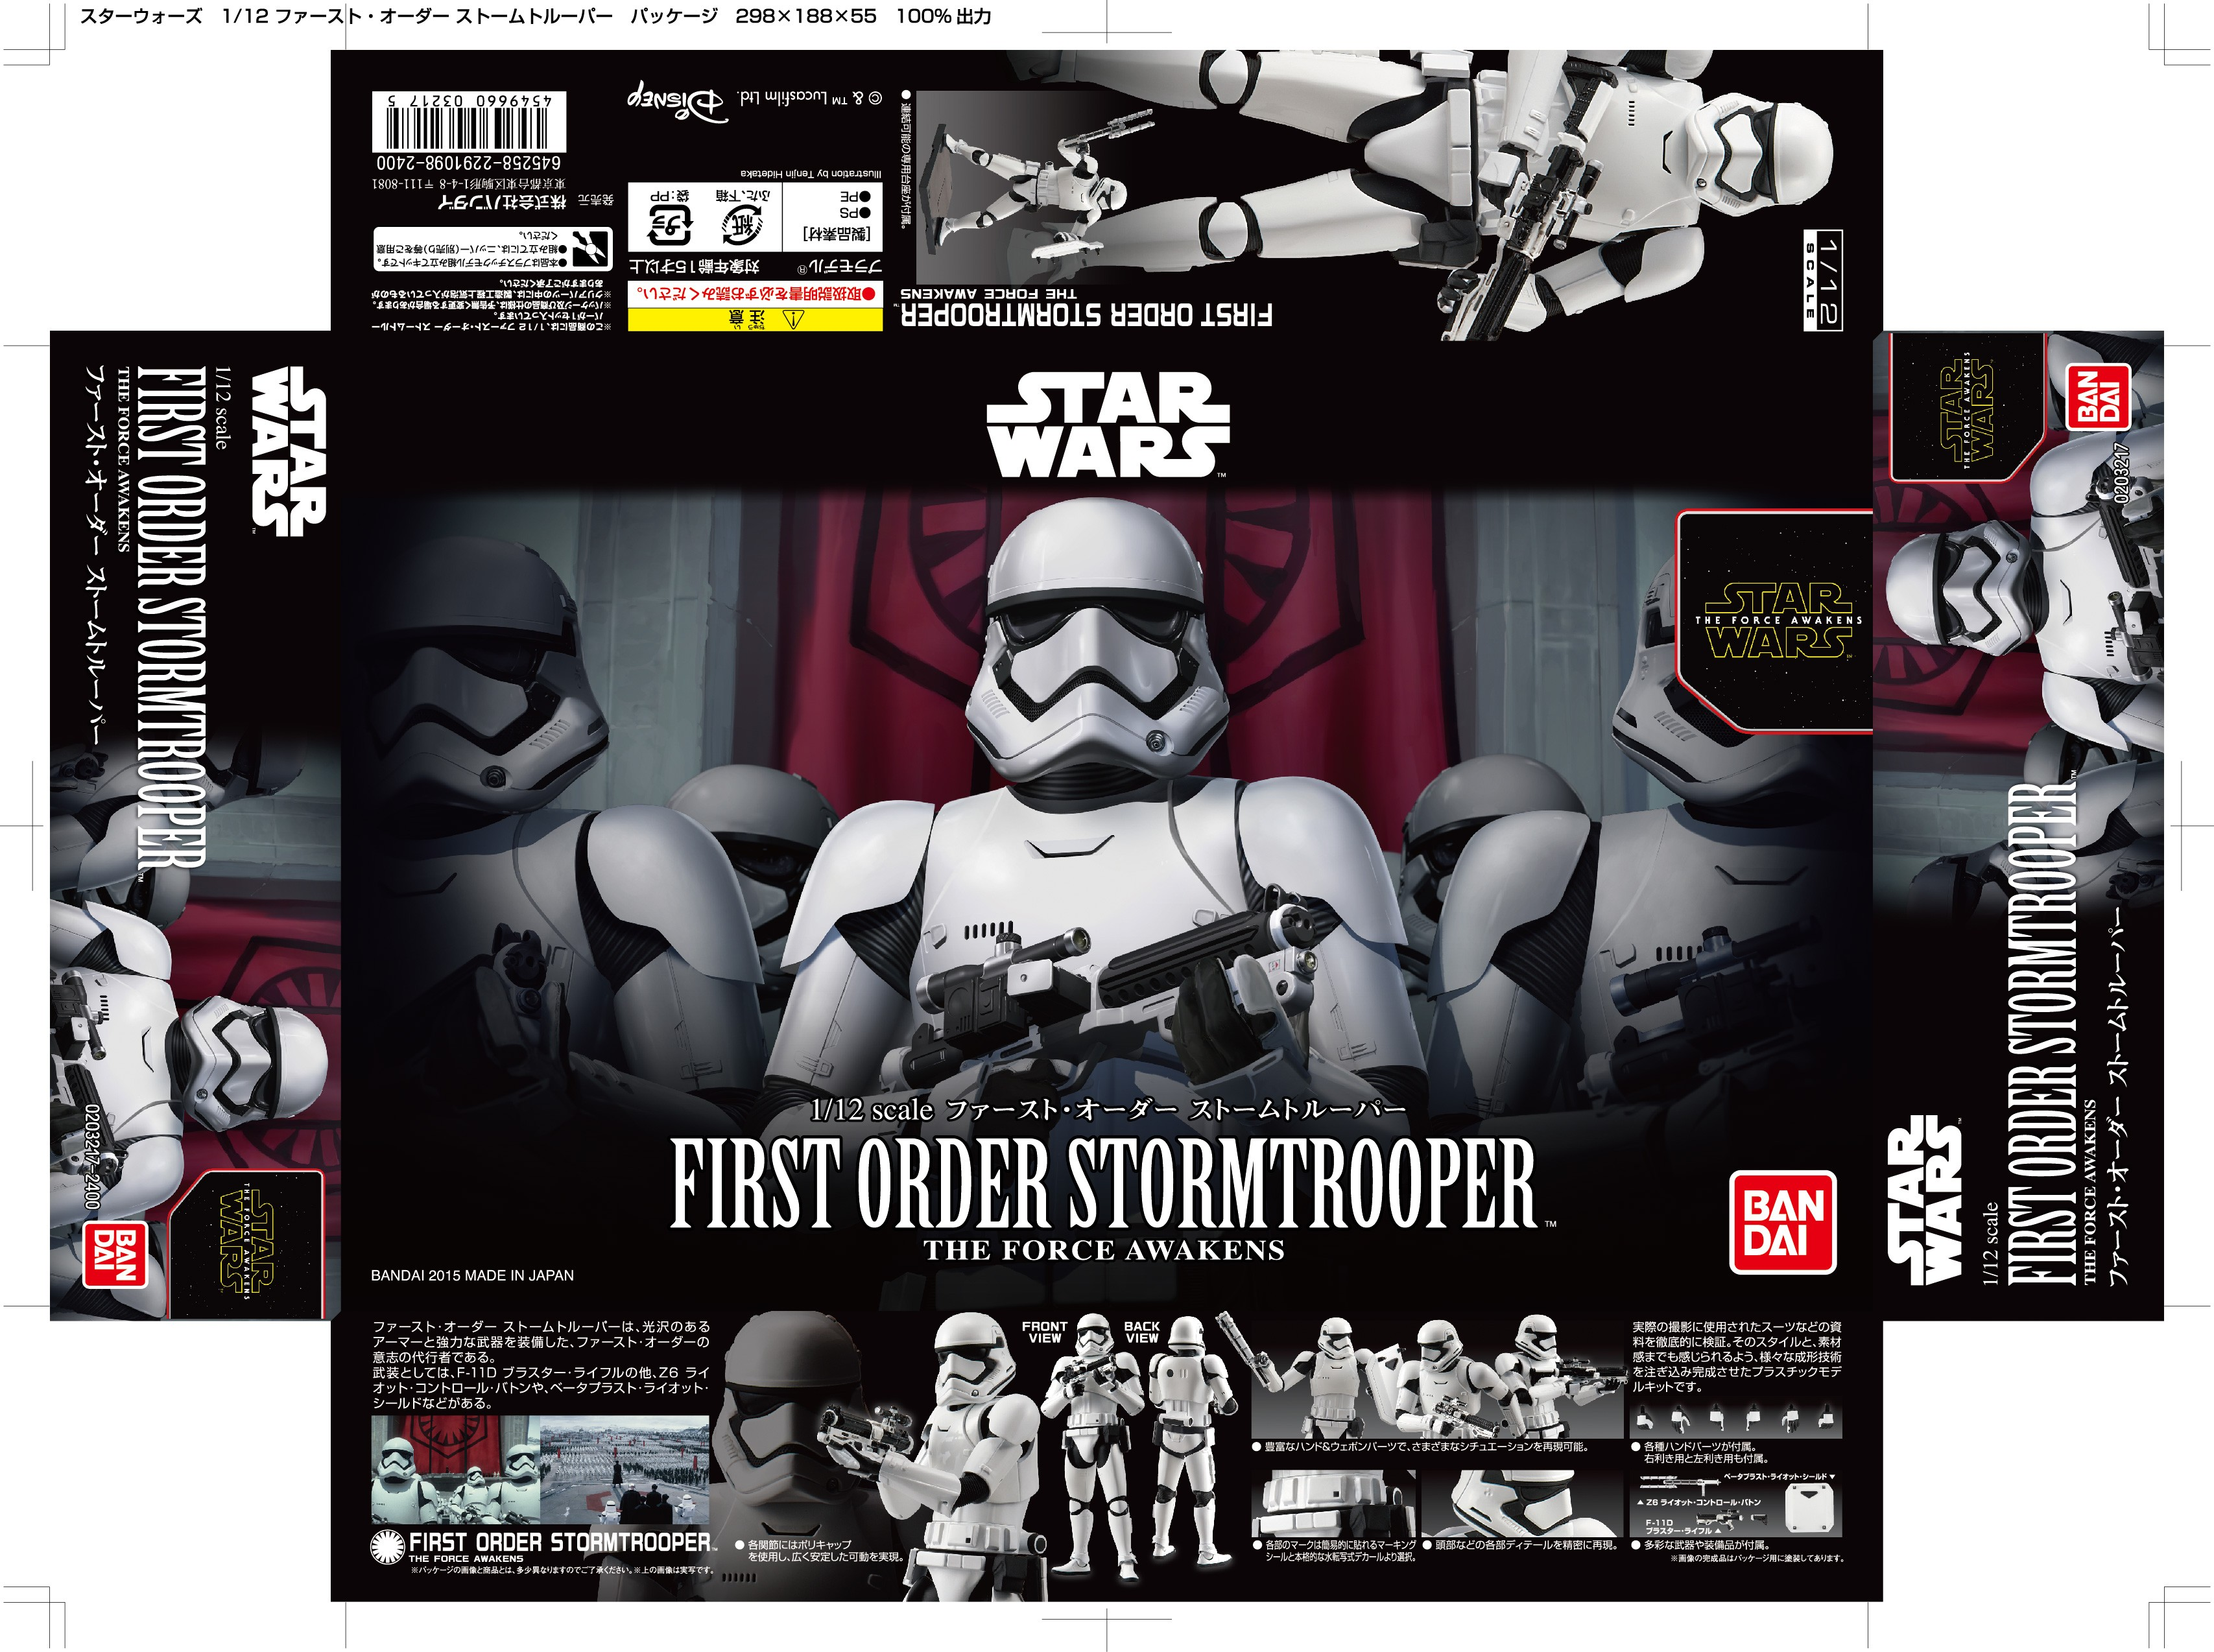 sw_ep7_firstorder_stormtrooper_PAC_[1]